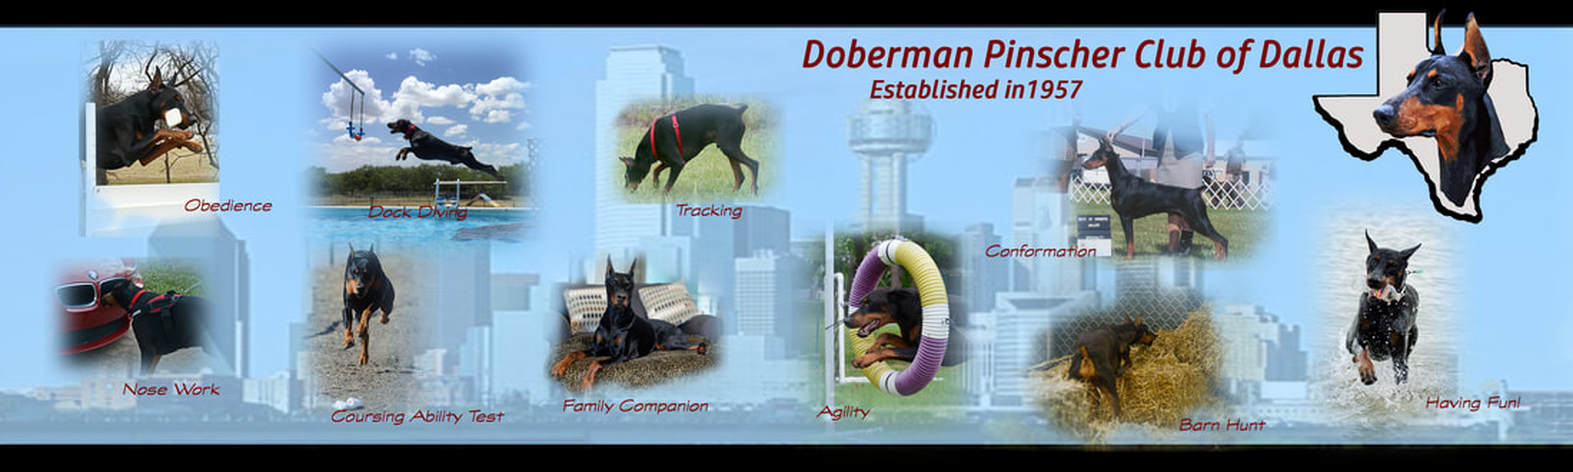 Doberman Pinscher Club of Dallas - Home